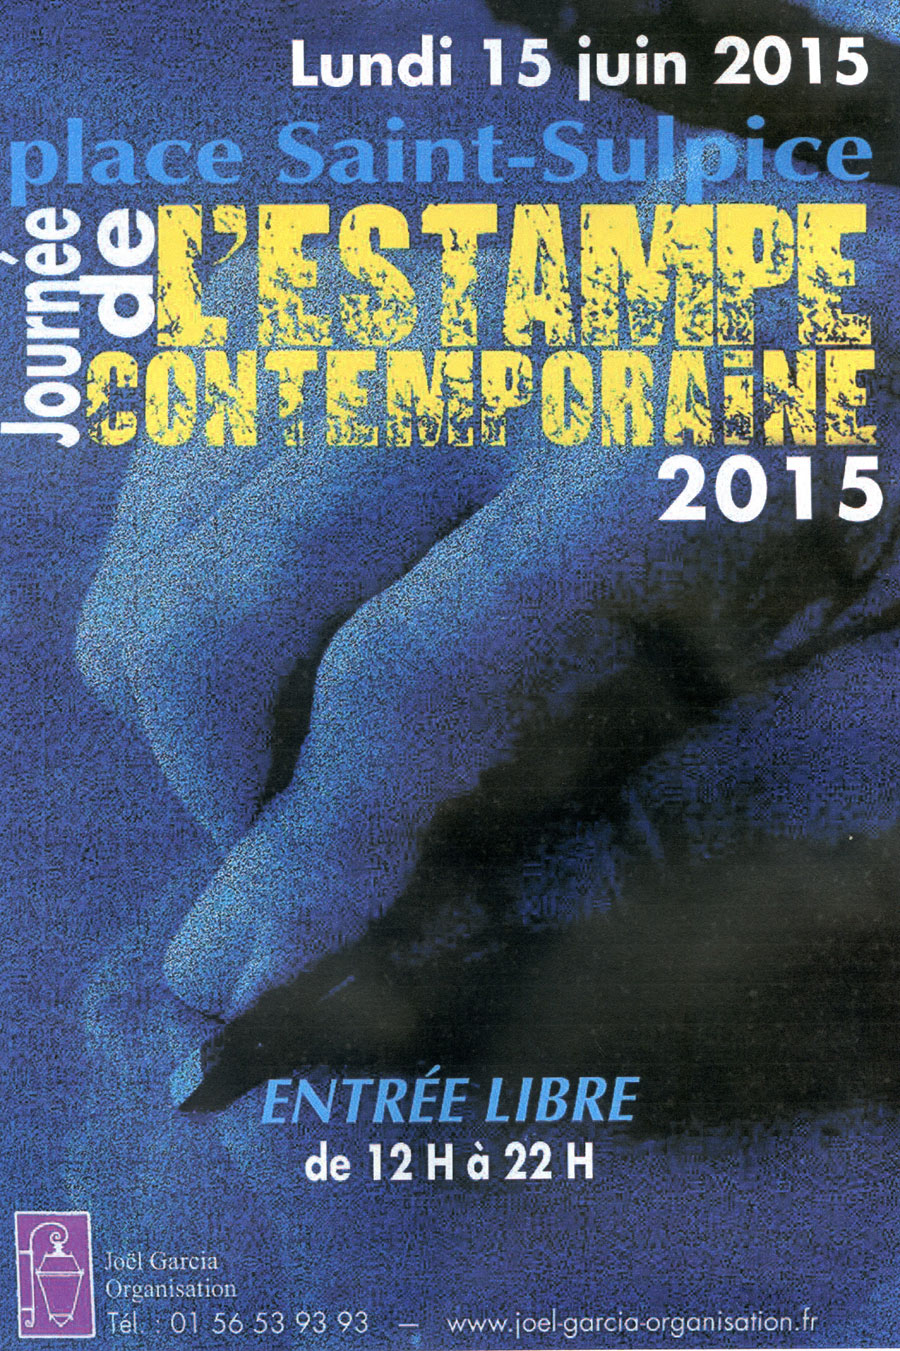 journee-estampe-juin-2015001